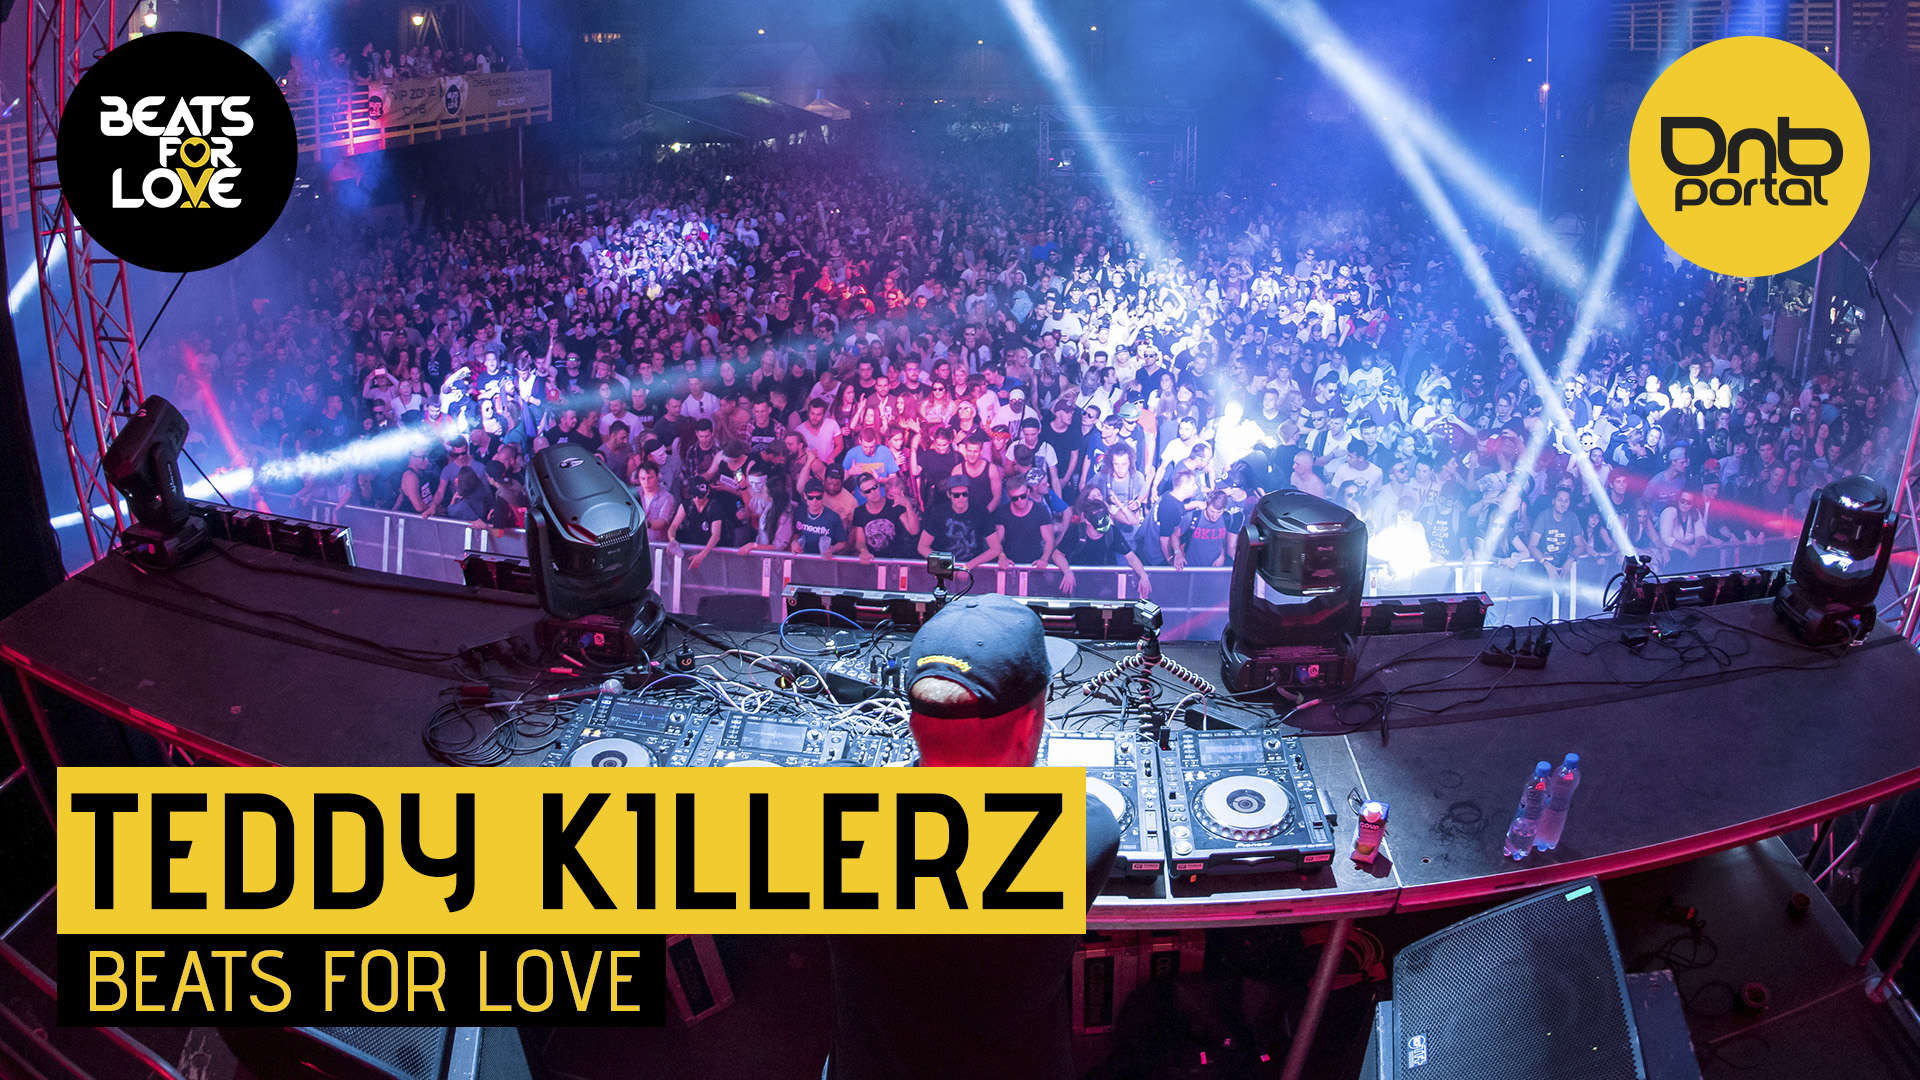 Teddy Killerz - Beats for Love 2018